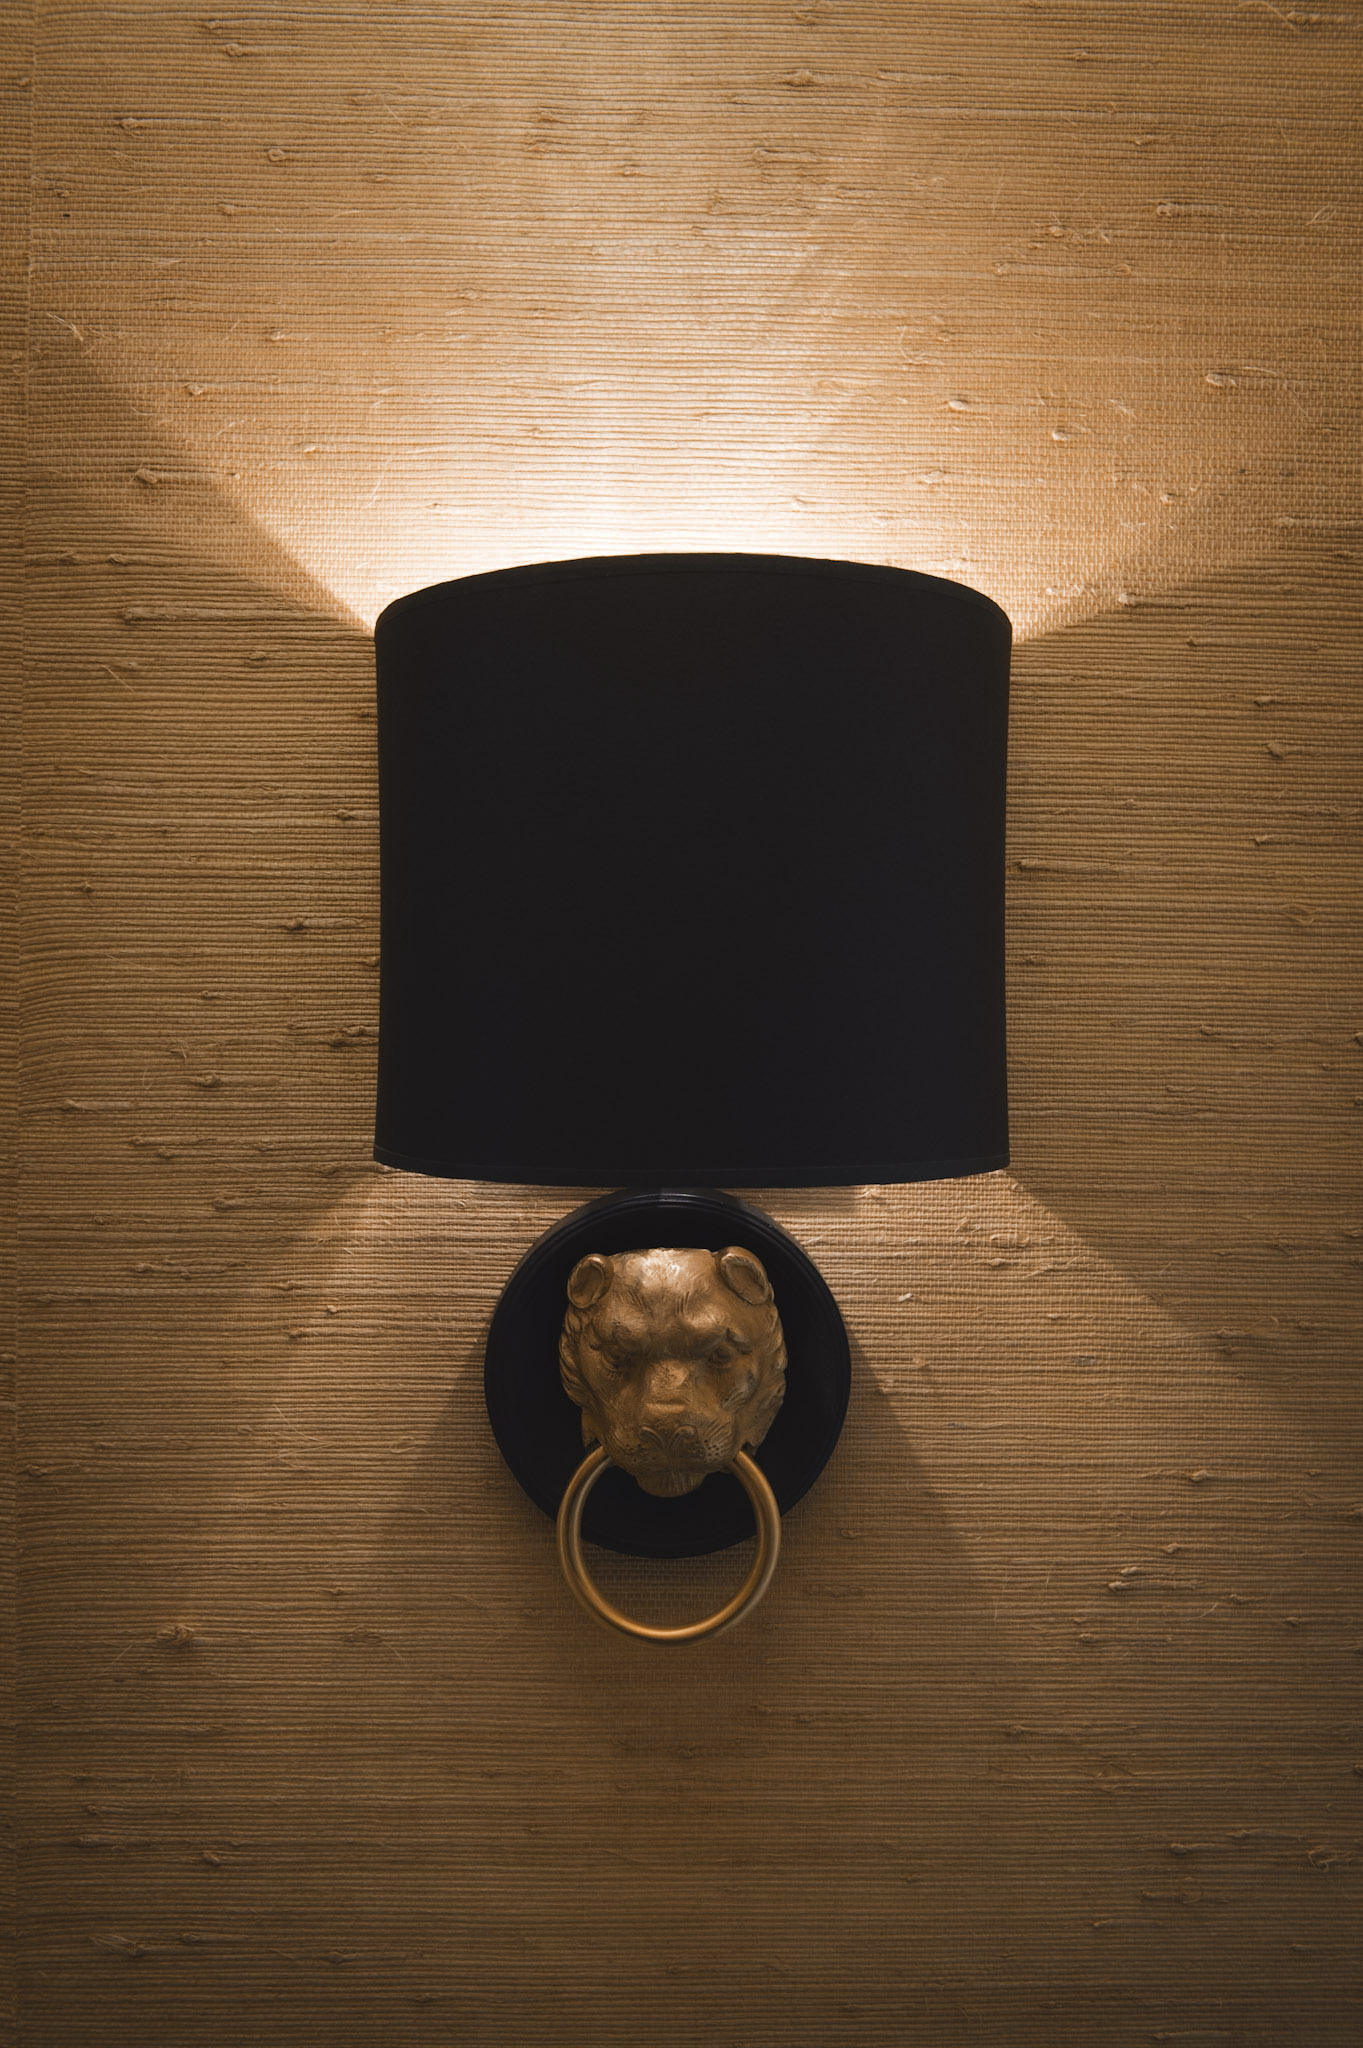 Vaughan 's Lion Head wall lights add a hint of glamour, while a black metal pendant introduces a graphic note.Walls are lined with Pearl River Jute from  Thibaut 's Grasscloth collection.